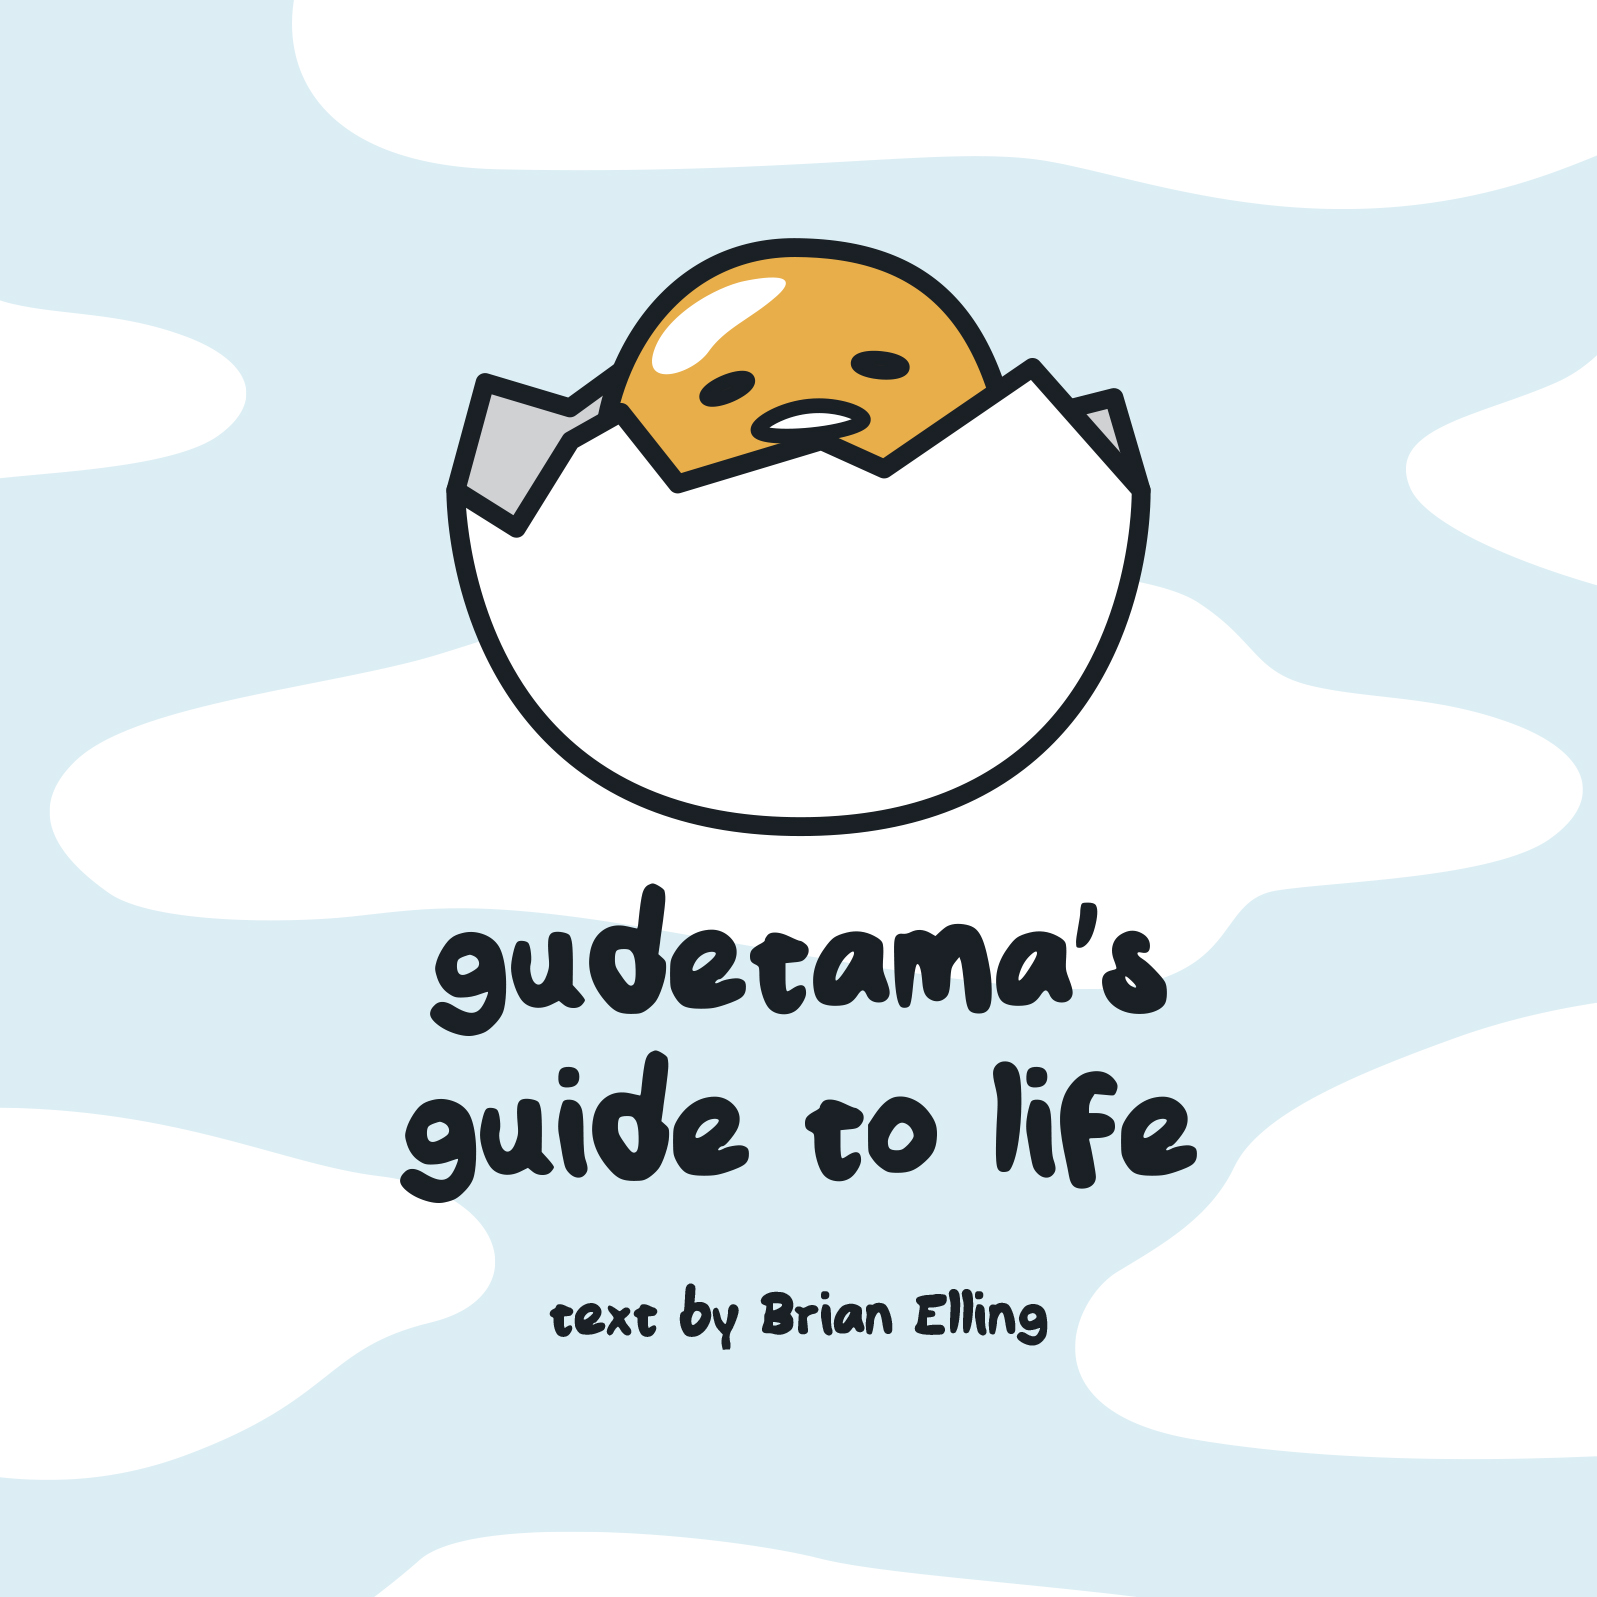 gudetamas guide to life